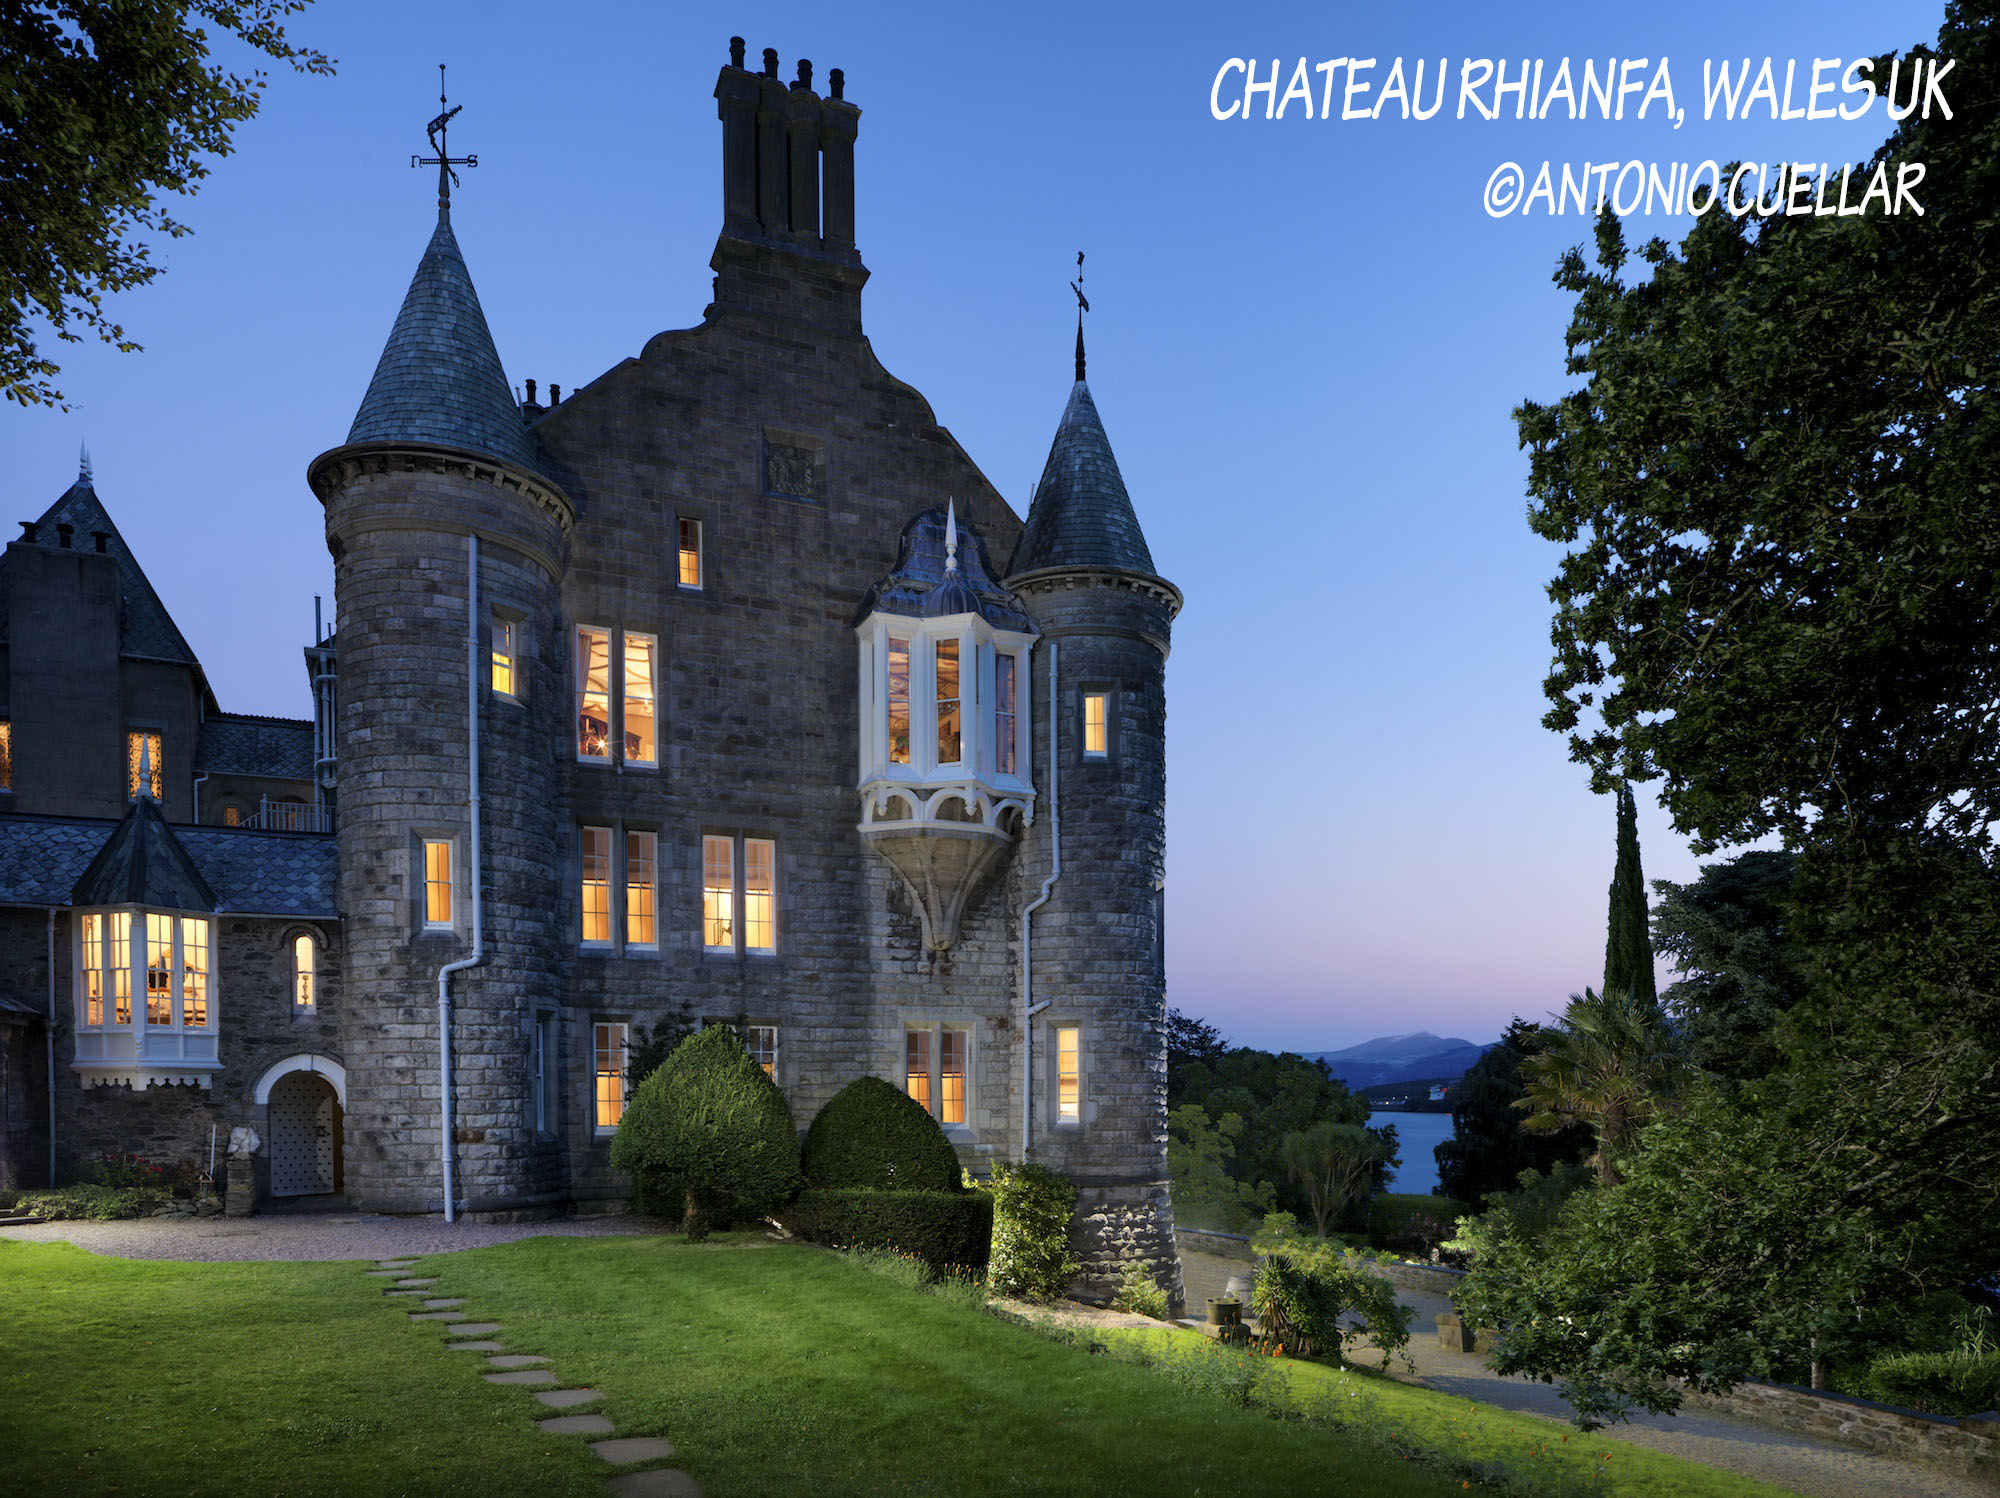 Hospitality industry trends Chateau Rianfa